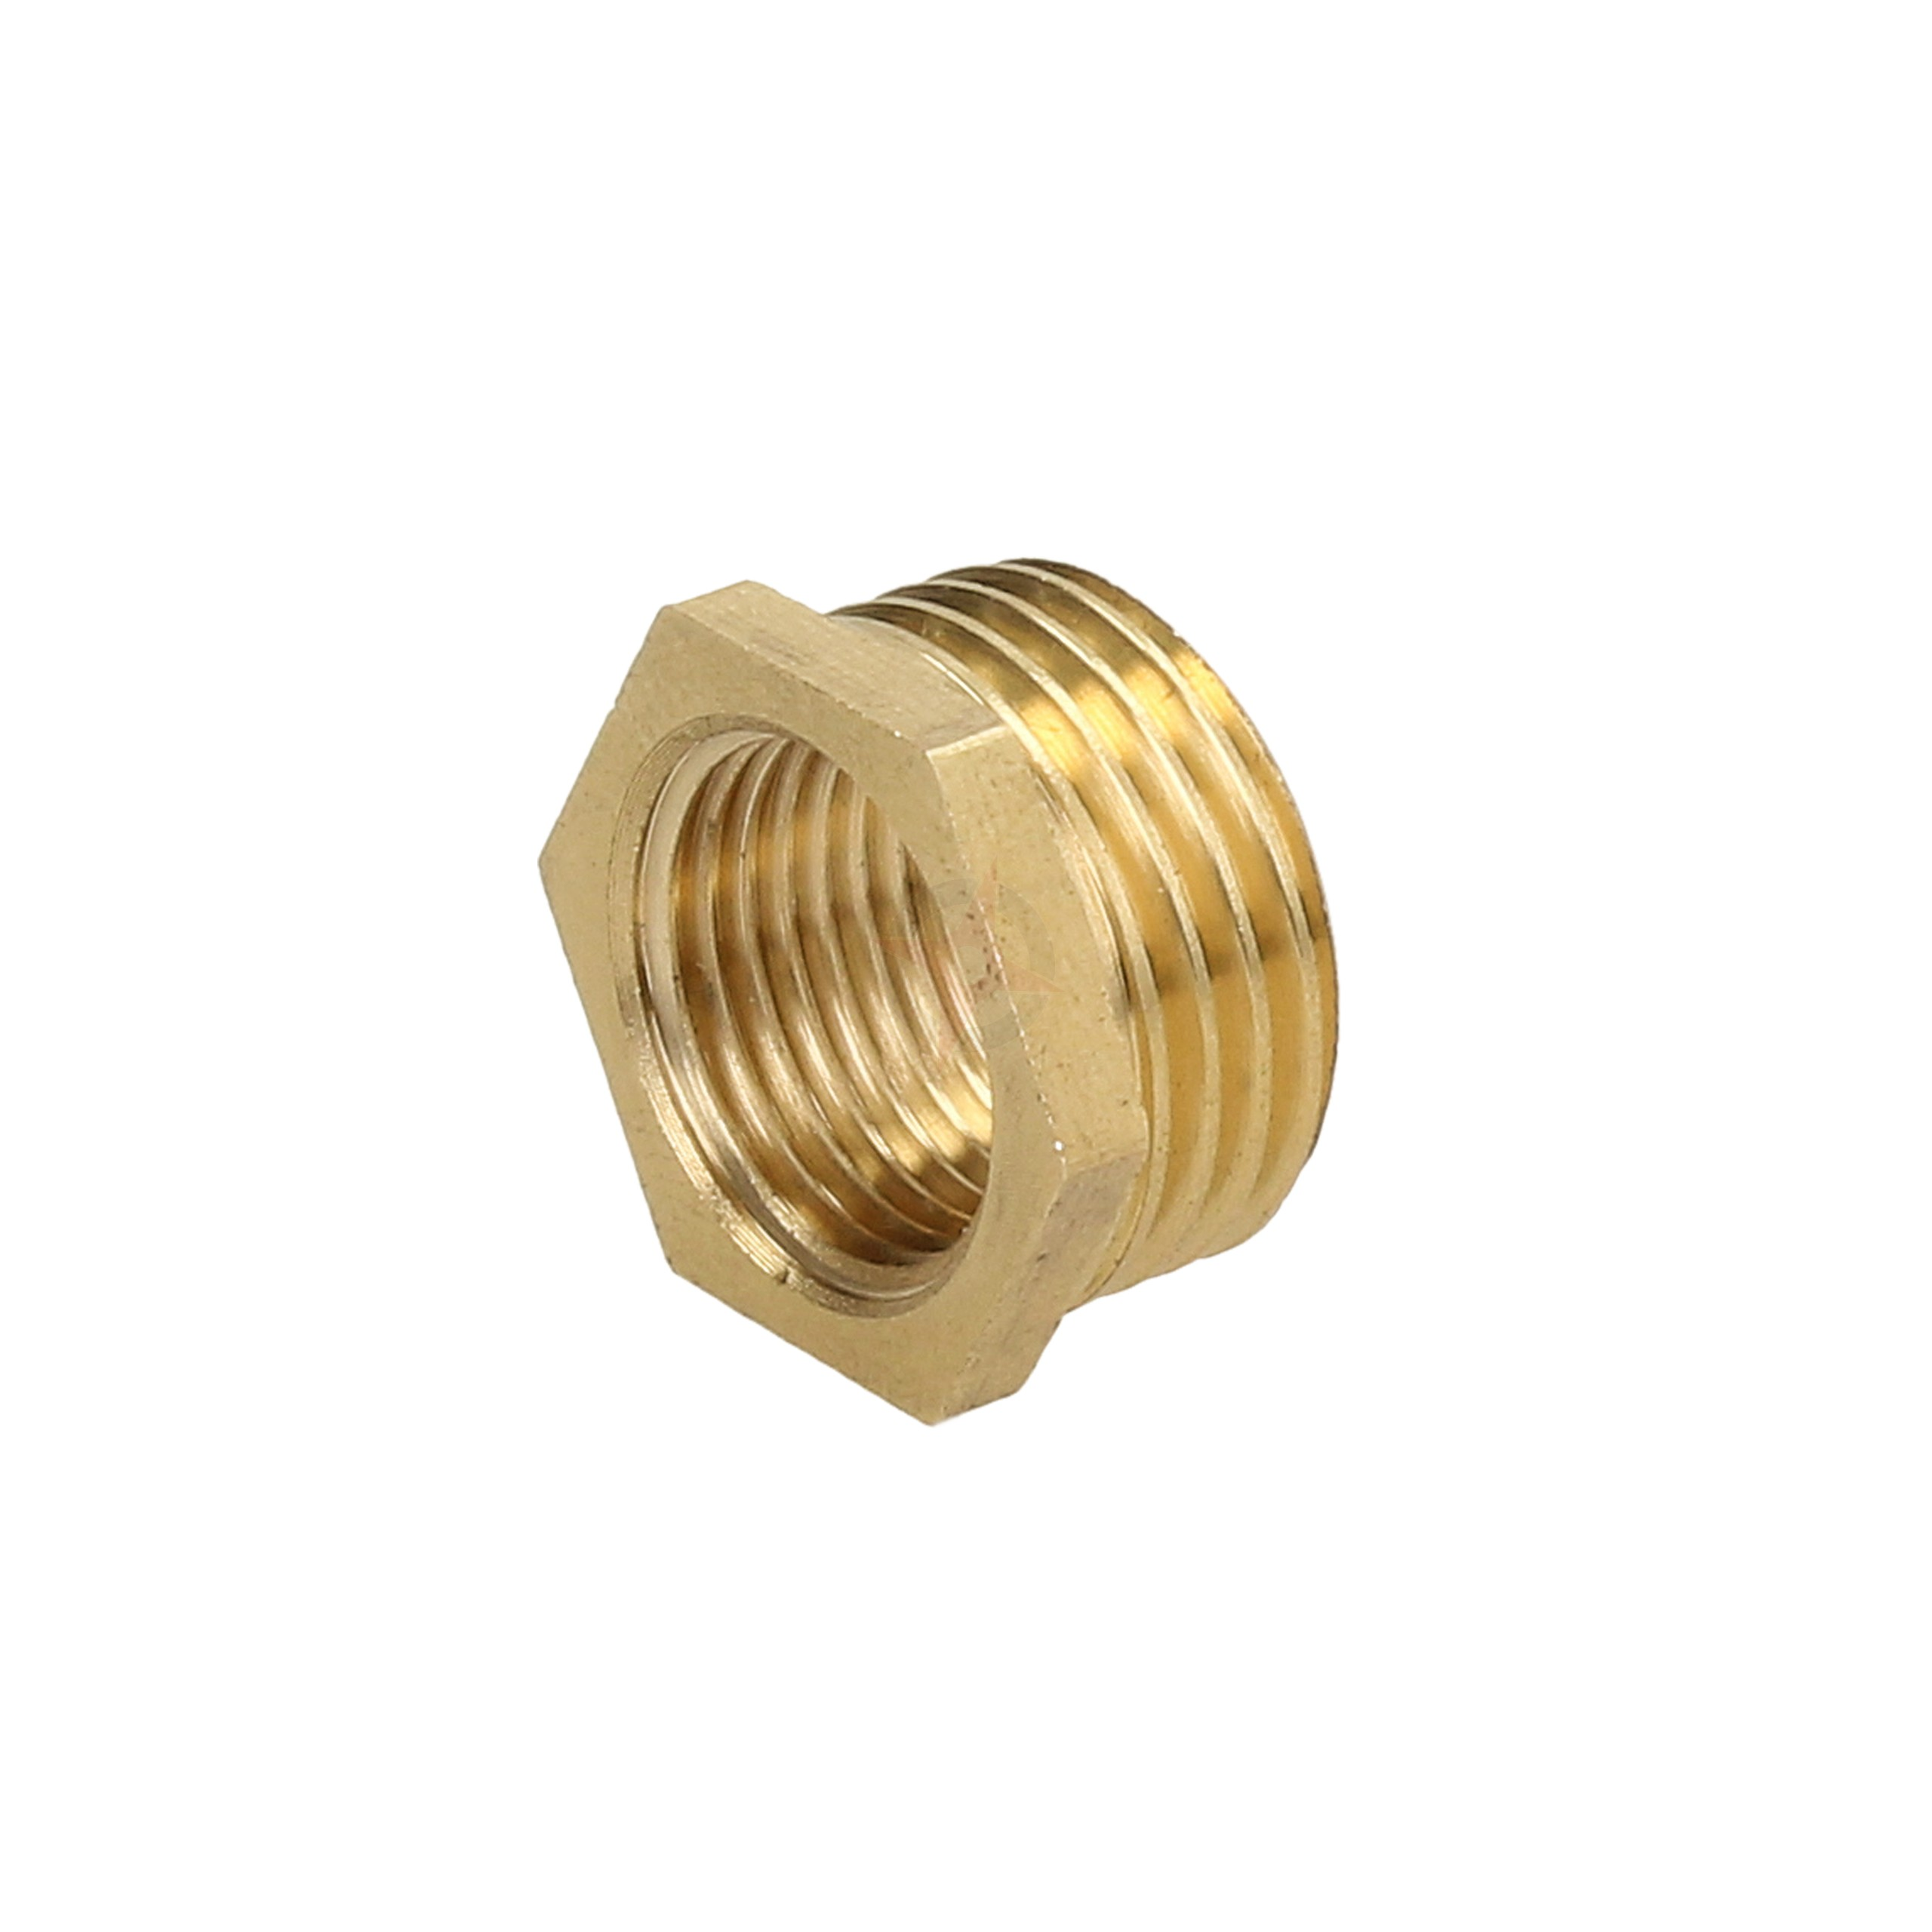 "Brass 1/2"" x 3/8"" Reducing Bush"